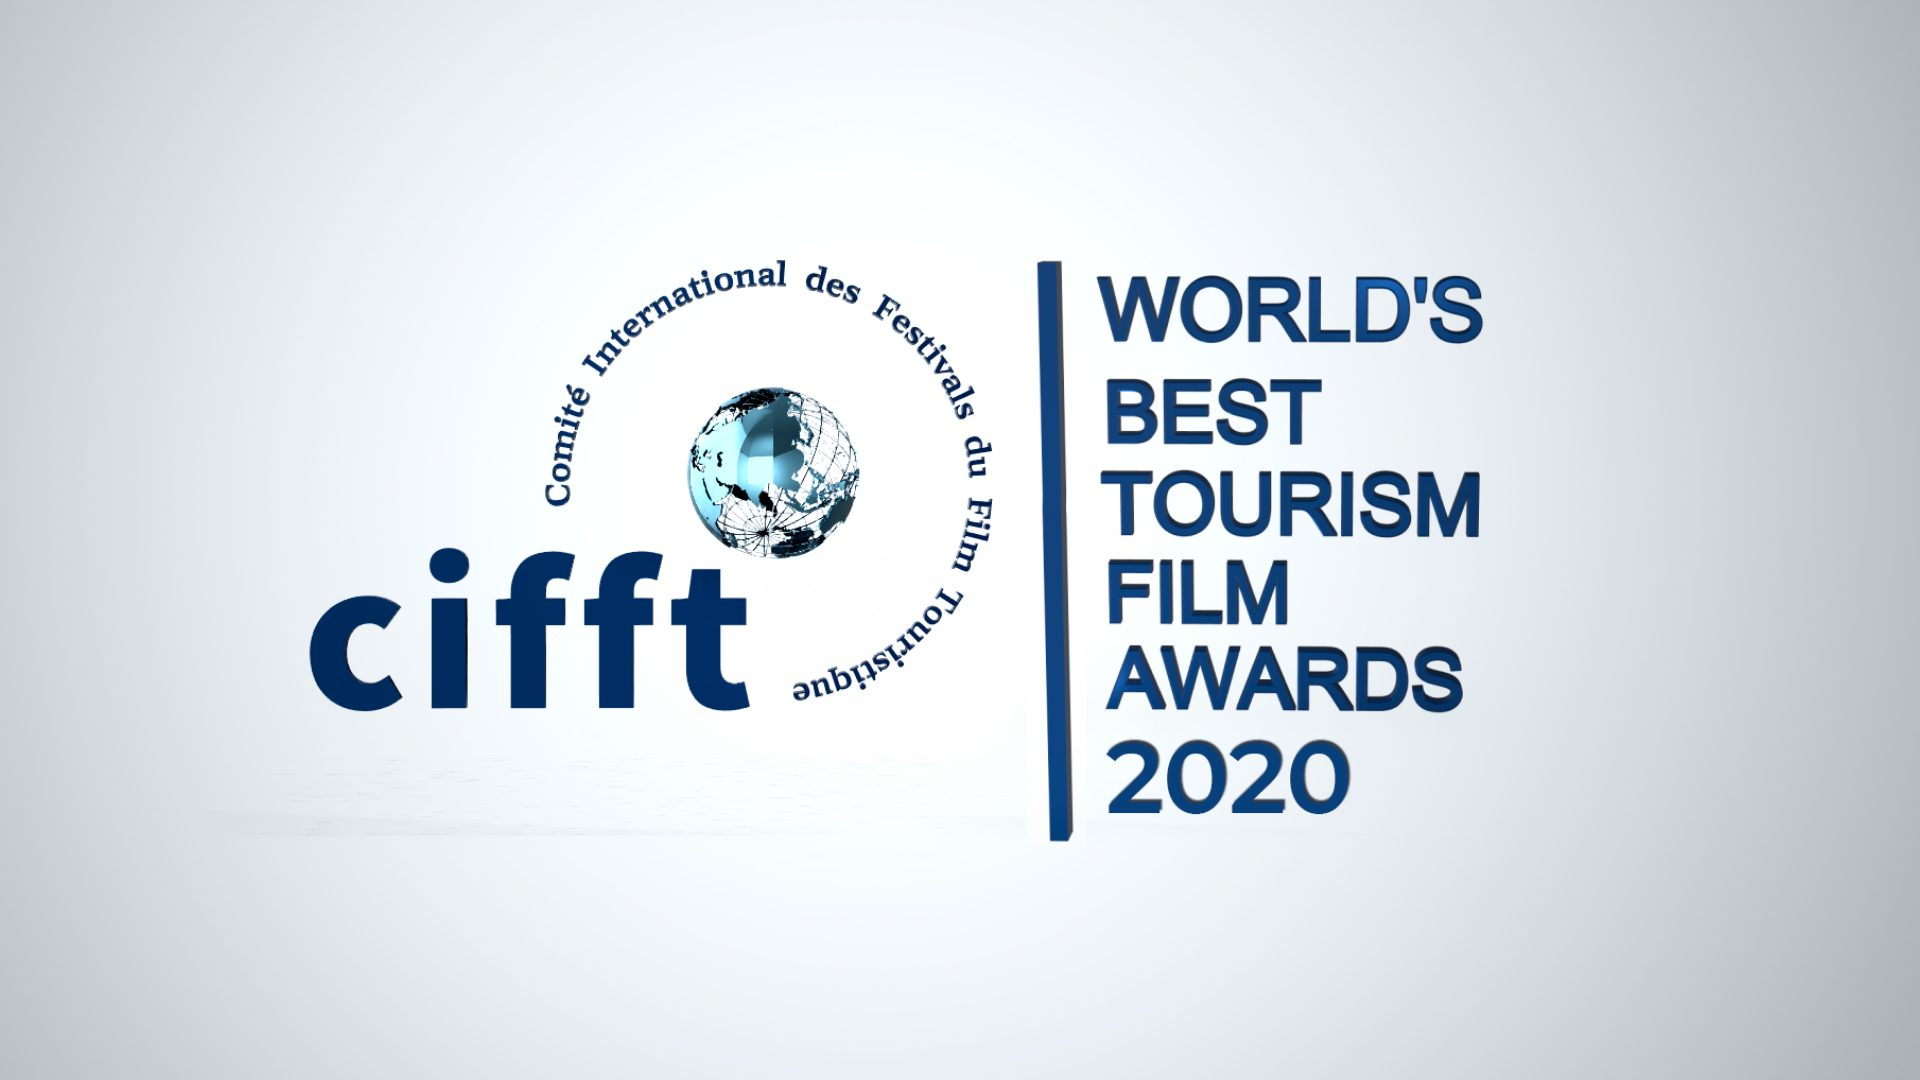 WorldBestTourismFilmAwards